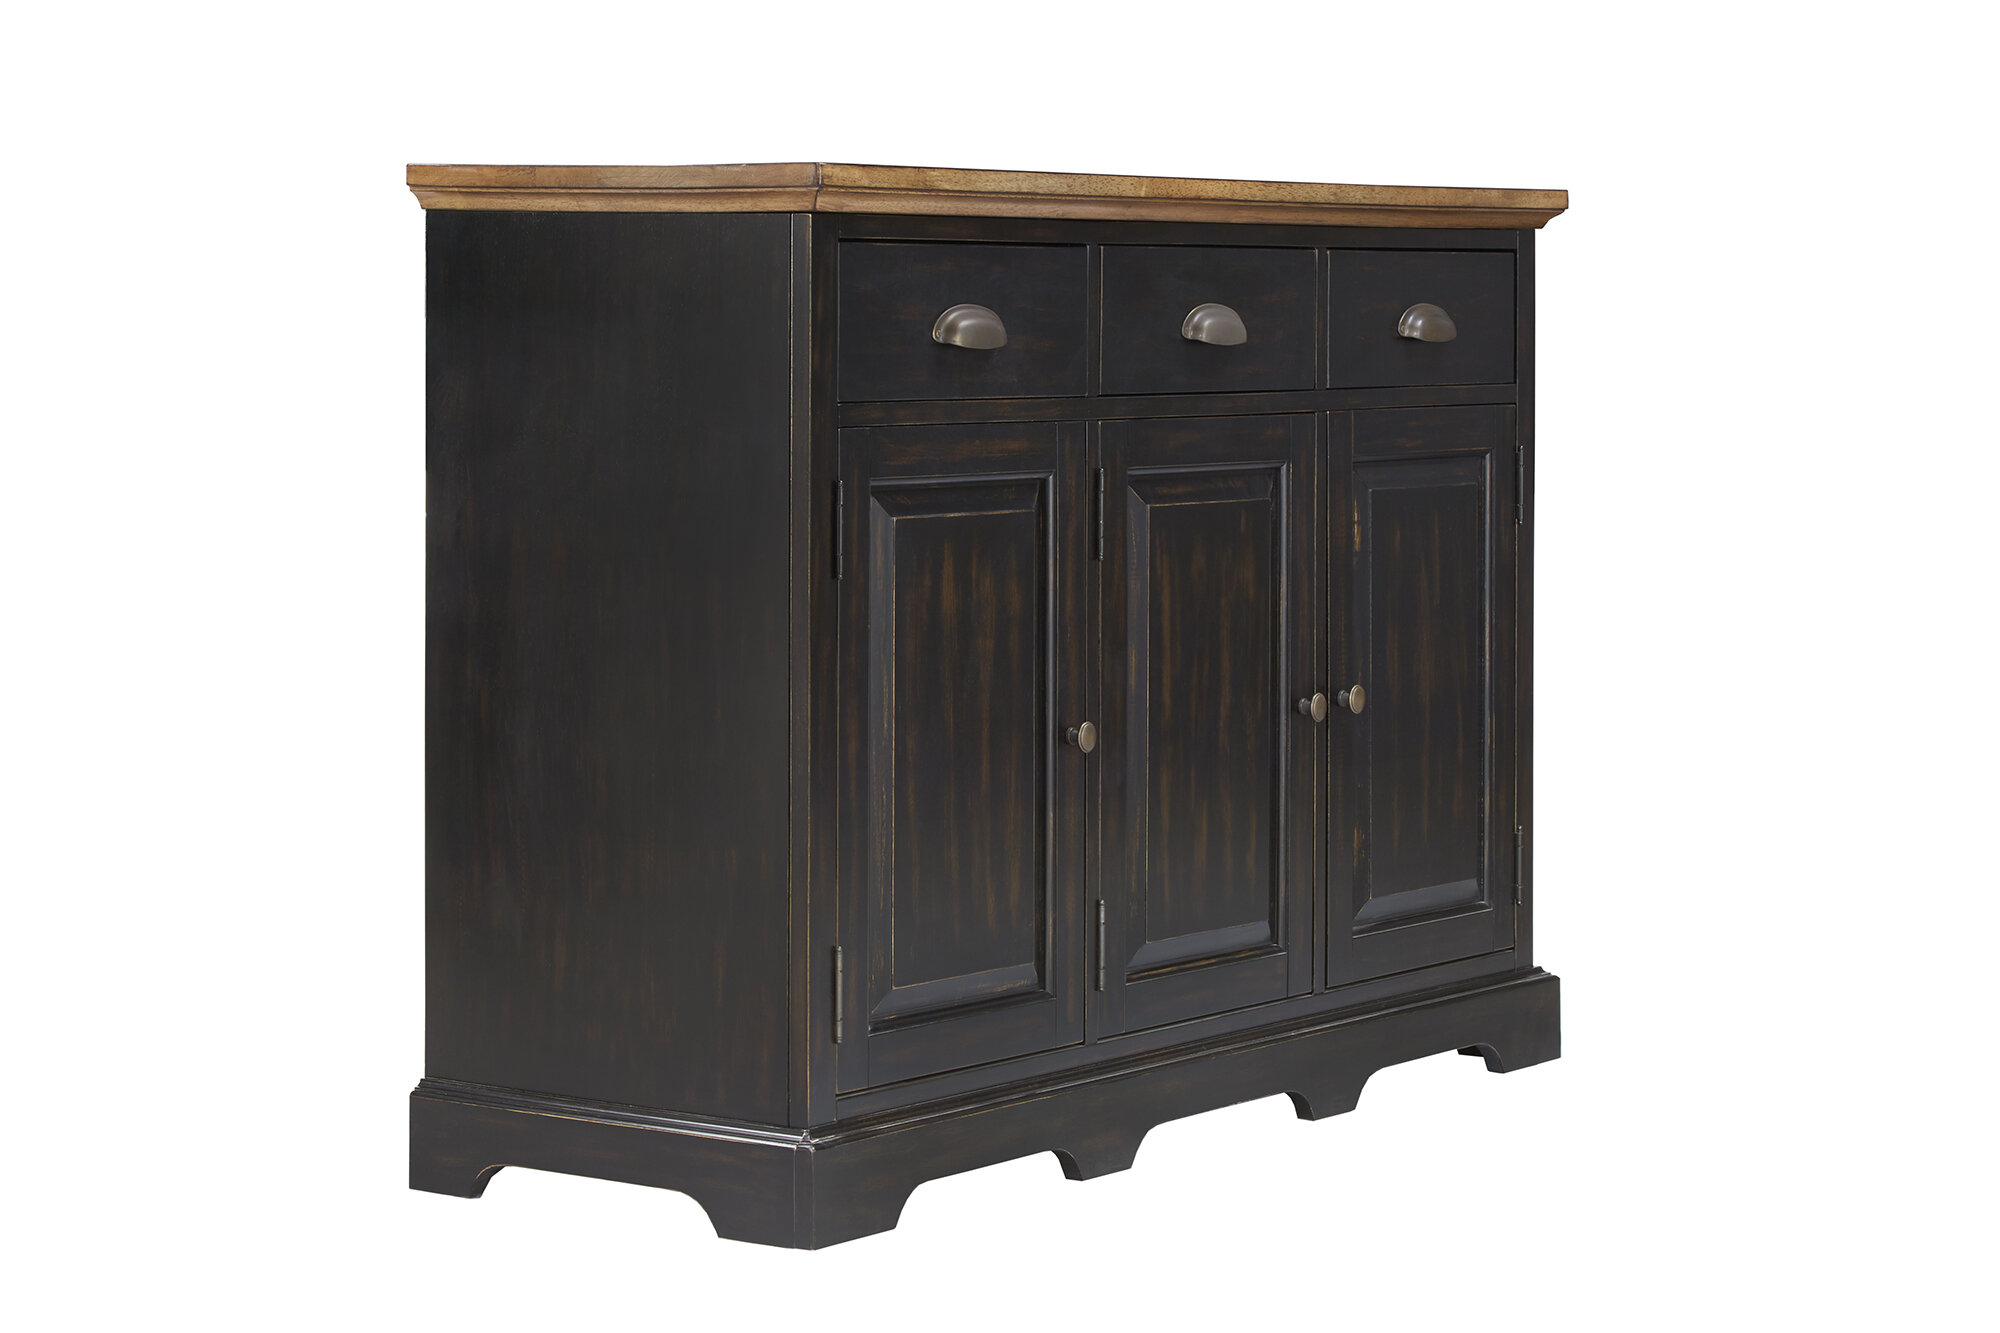 Three Posts Fortville Sideboard Intended For Most Recent Fortville Sideboards (View 8 of 20)